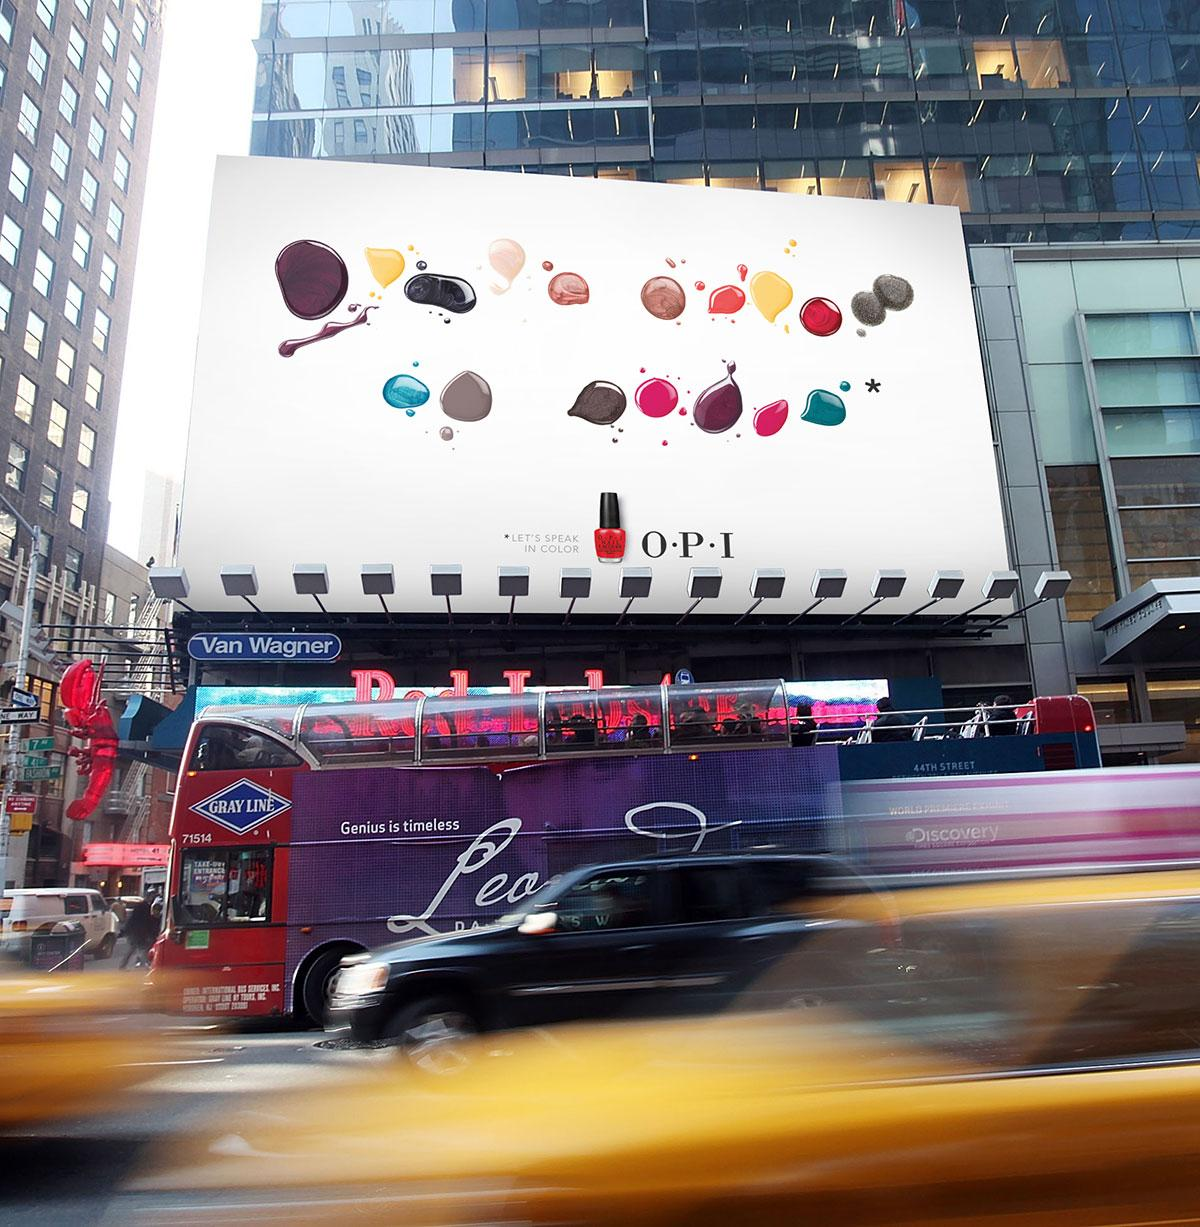 RT @Adweek: Ad of the Day: OPI brilliantly creates a whole alphabet from drops of nail polish. http://t.co/GCuaqPLk4F http://t.co/e618EkzMi1